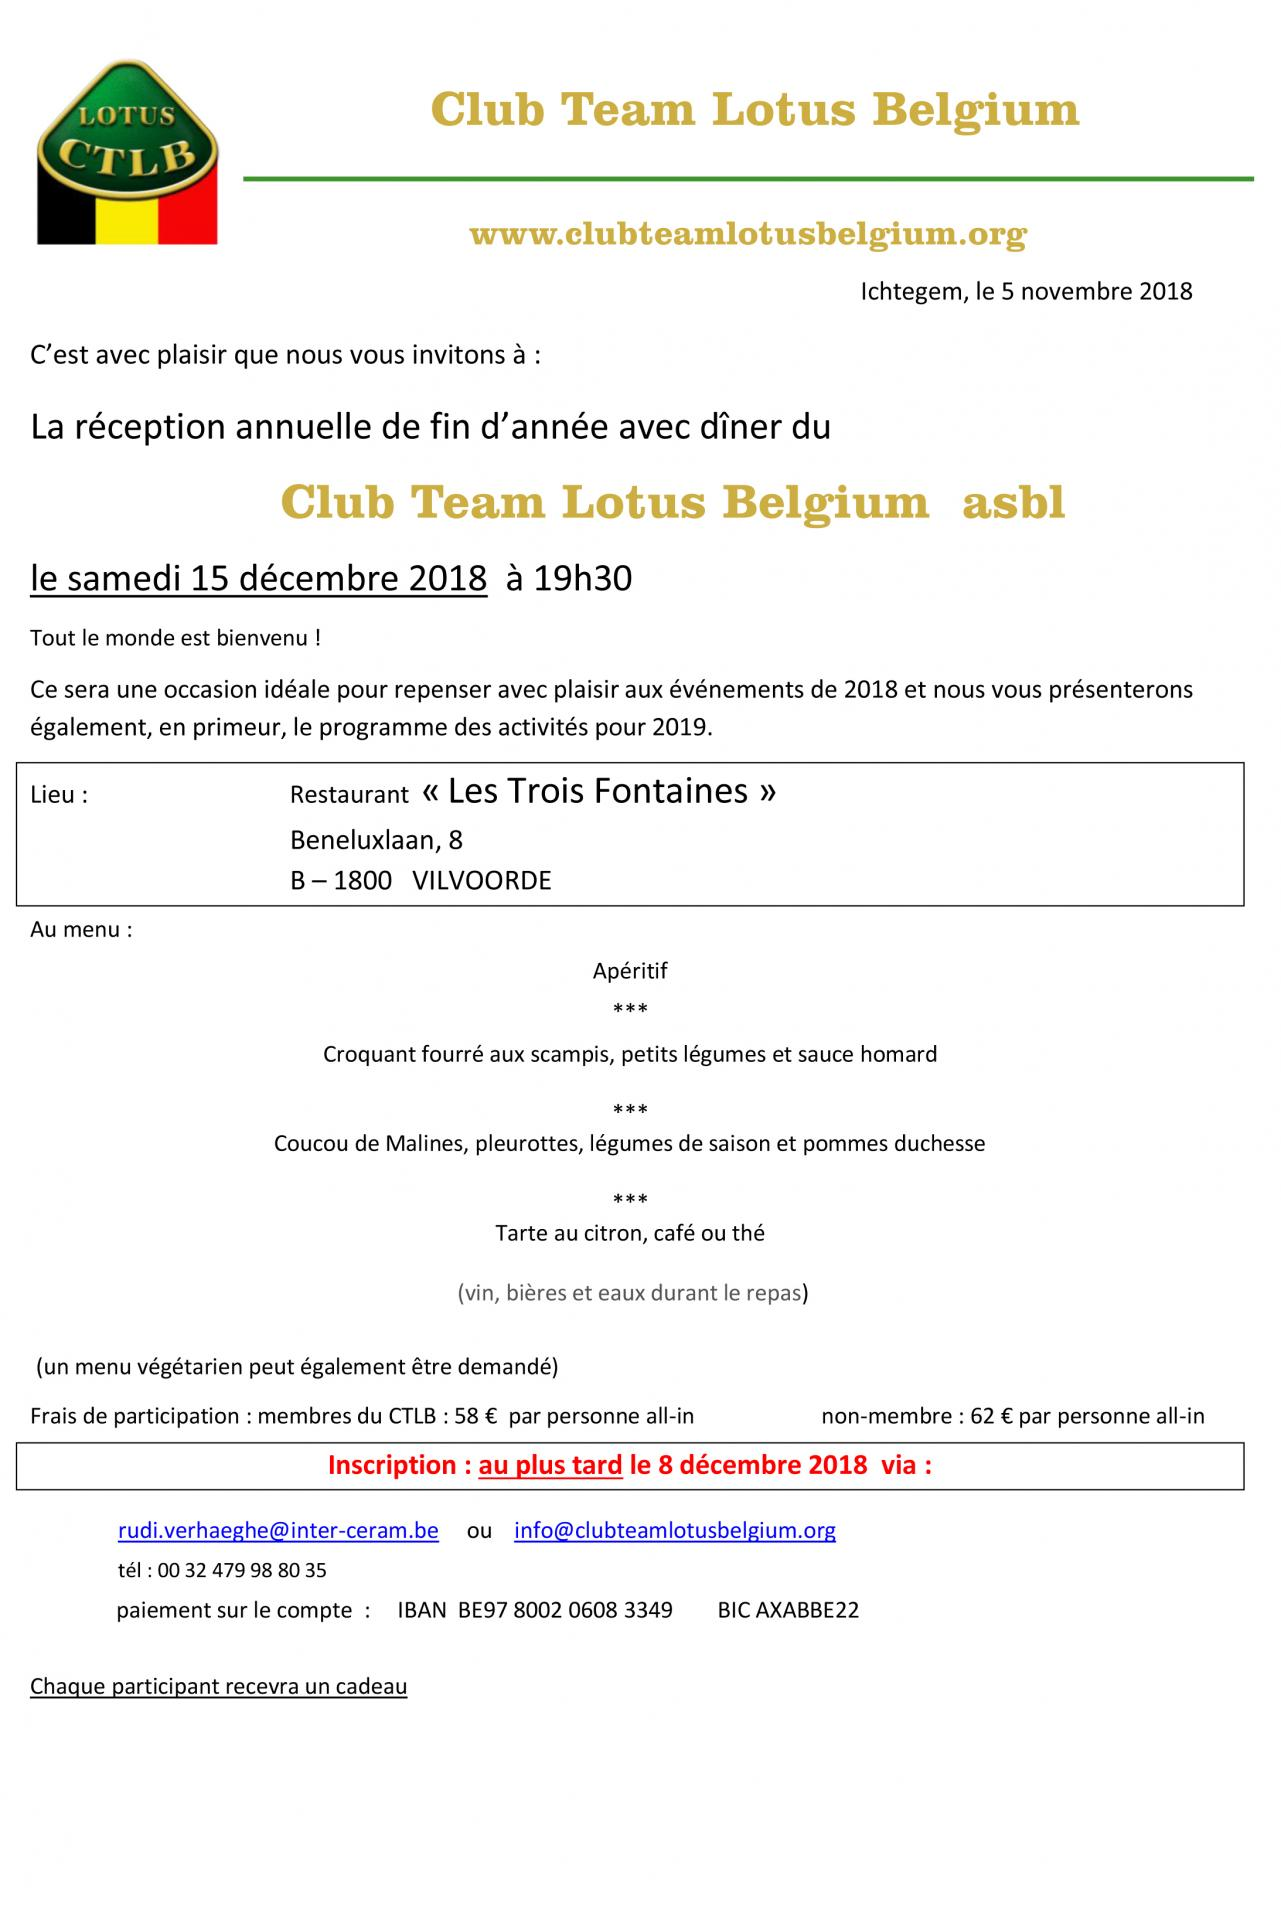 Reception de fin d annee 2018